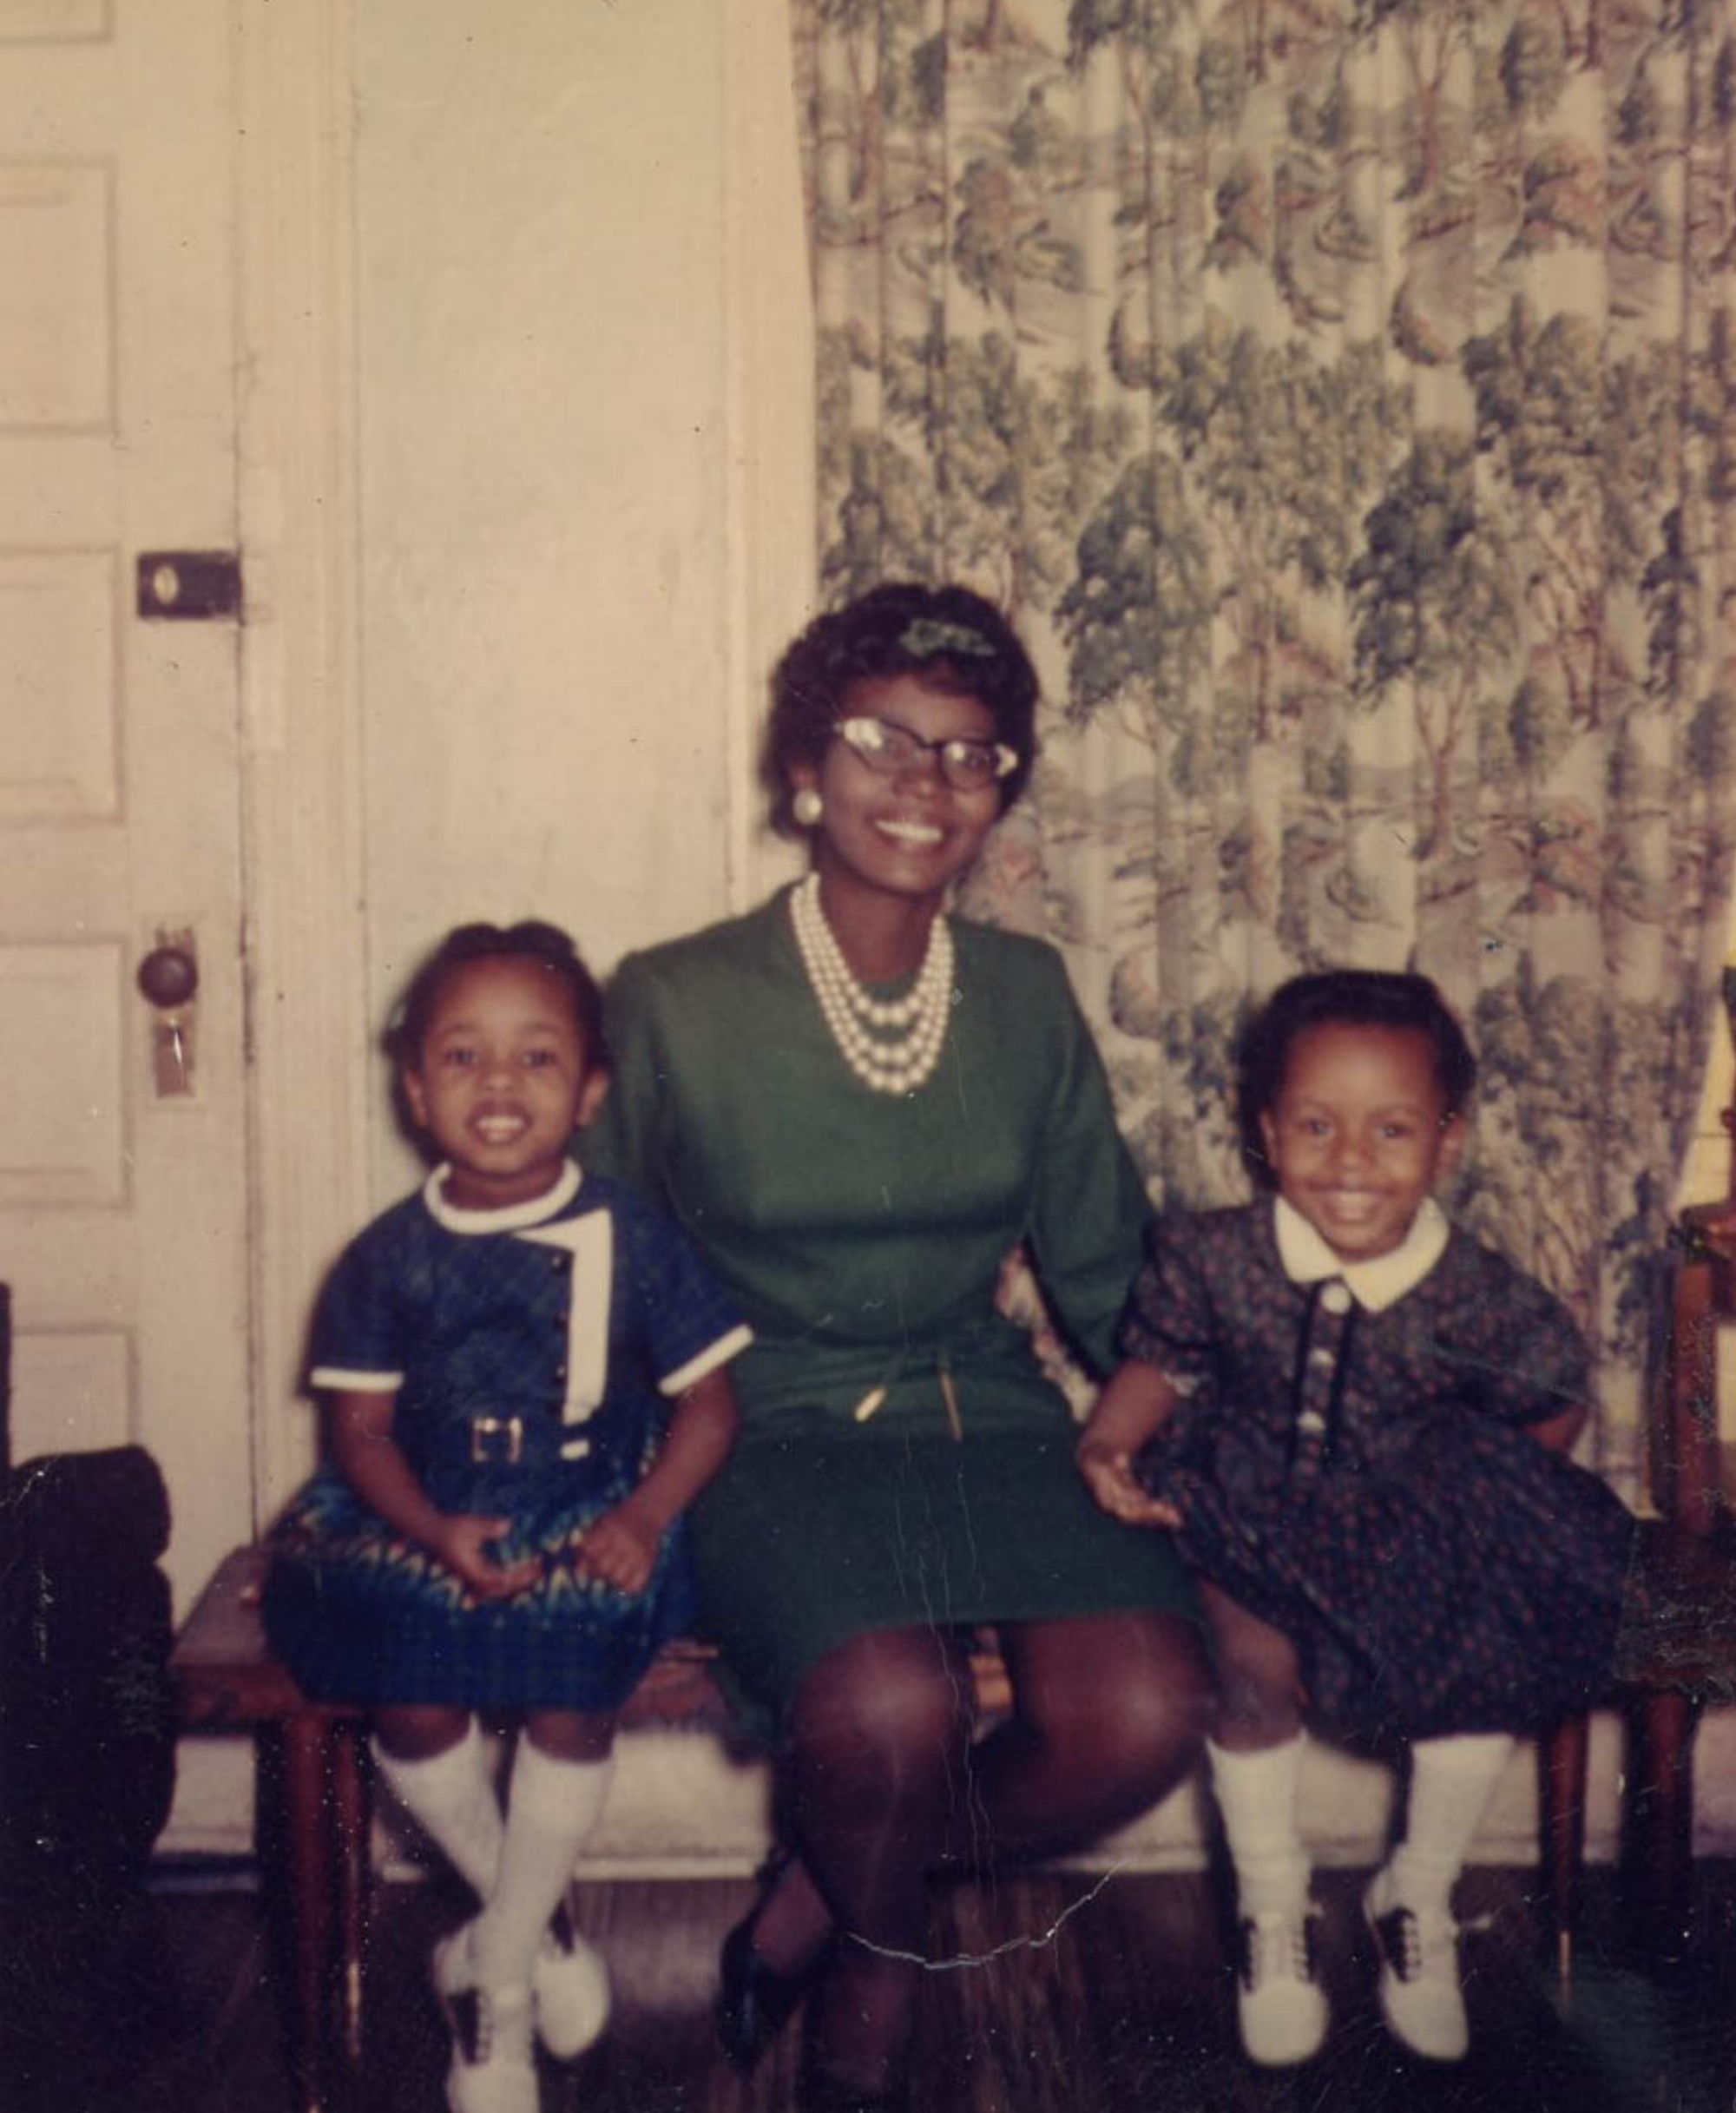 Kim El (left) with her mother Joan, and sister Cheryl in the early 1960s. Courtesy of Kim El.